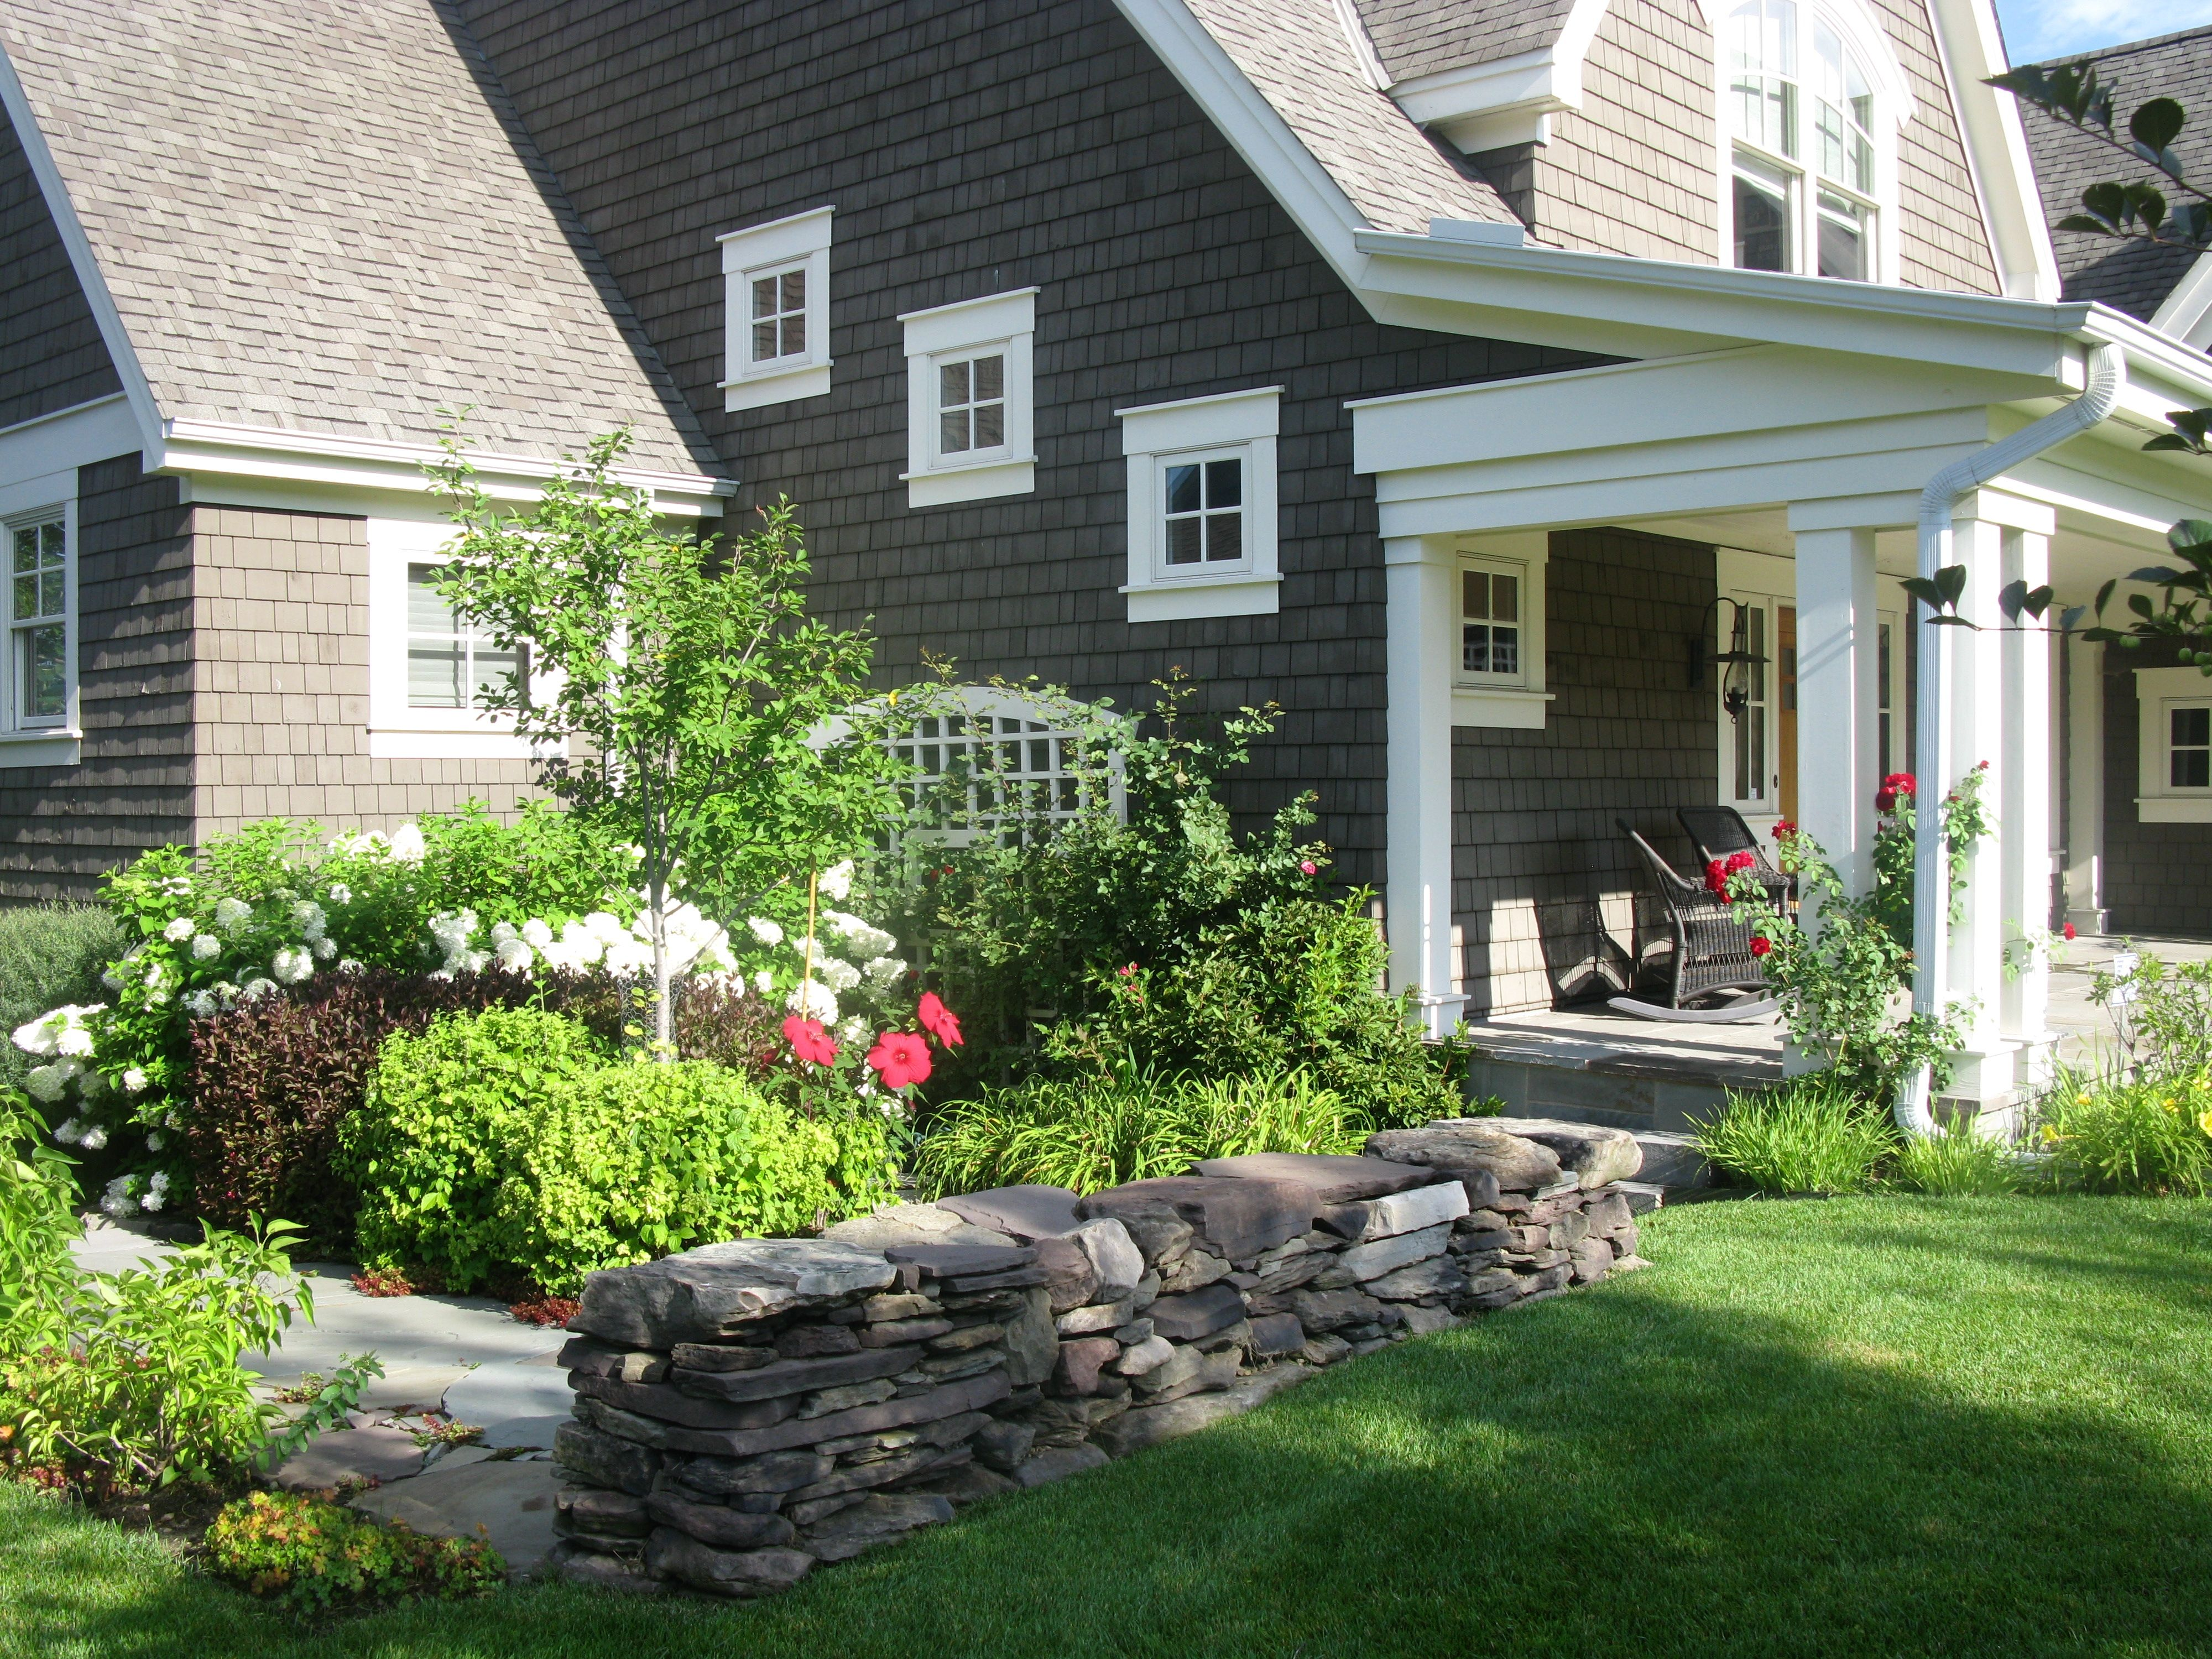 Landscaping ideas for front of house with porch to for Garden in front of house